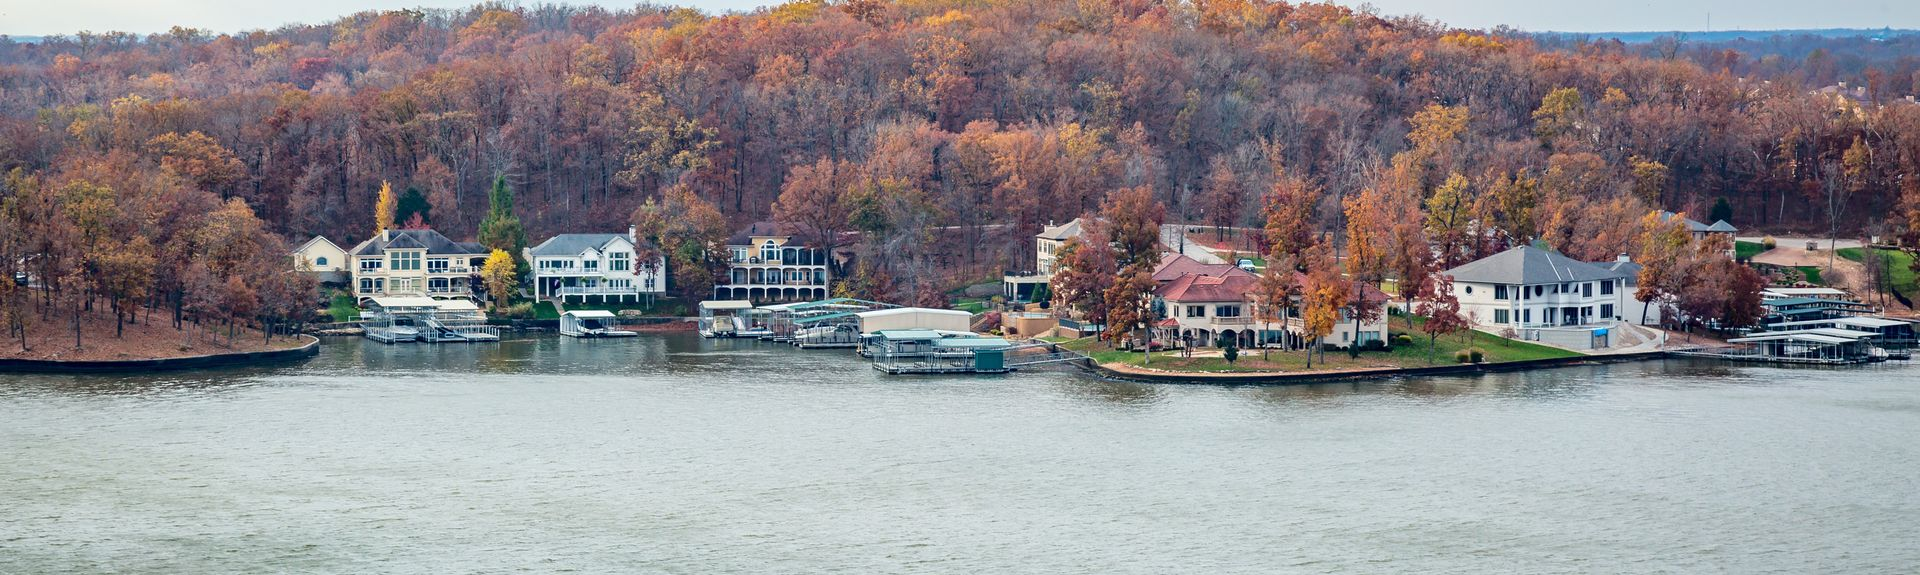 Vrbo | Lake of the Ozarks, US Vacation Rentals: house